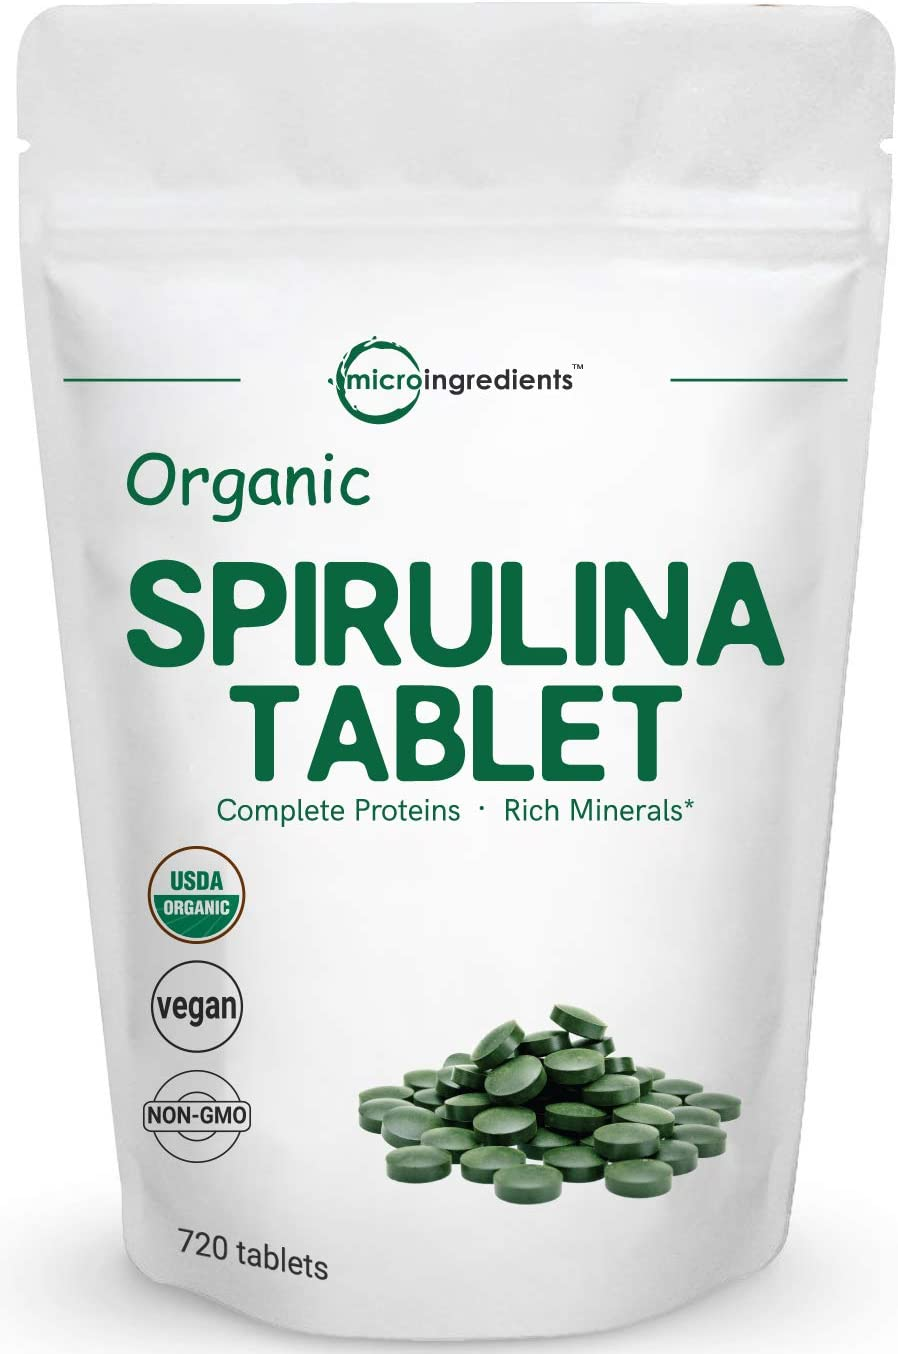 Organic Spirulina Supplement Spirulina Organic , 3000MG Per Serving, 720 Tablets 4 Month Supply , Rich in Prebiotics, Immune Vitamins, Chlorophyll, Fiber, Proteins, Premium Spirulina Pills Organic